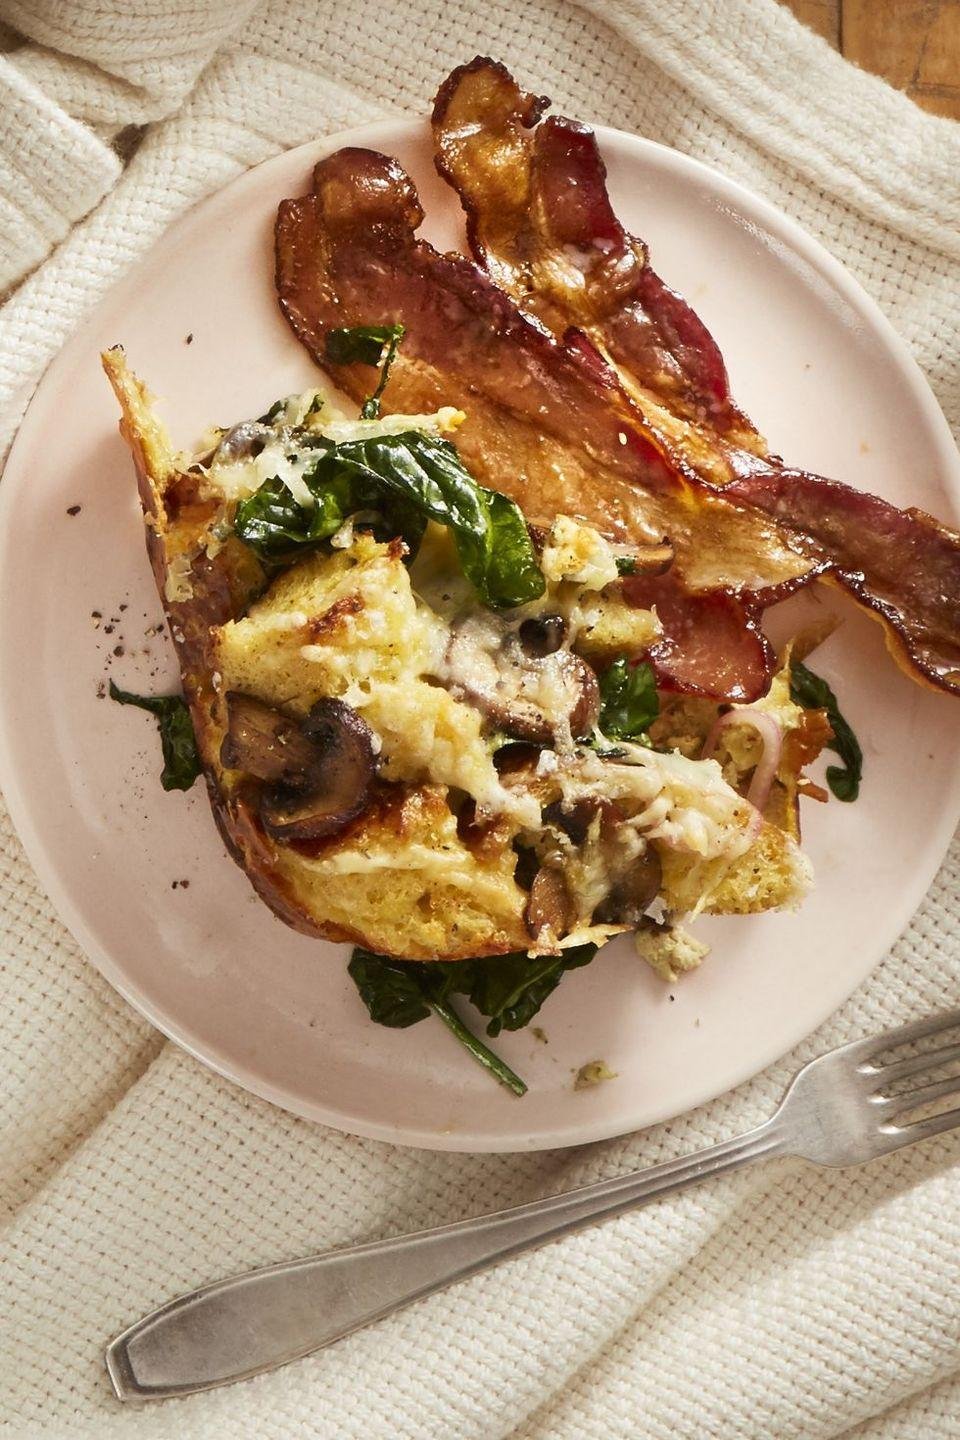 "<p>Turkey will have its time to shine later in the day. Right now? We're devoting 100% of our attention to bacon. </p><p><em><a href=""https://www.goodhousekeeping.com/food-recipes/a25333135/coffee-glazed-bacon-recipe/"" rel=""nofollow noopener"" target=""_blank"" data-ylk=""slk:Get the recipe for Coffee-Glazed Bacon »"" class=""link rapid-noclick-resp"">Get the recipe for Coffee-Glazed Bacon »</a></em></p><p><strong>RELATED: </strong><a href=""https://www.goodhousekeeping.com/food-recipes/cooking/g4678/how-to-cook-bacon/"" rel=""nofollow noopener"" target=""_blank"" data-ylk=""slk:How to Cook Perfectly Crisp Bacon"" class=""link rapid-noclick-resp"">How to Cook Perfectly Crisp Bacon </a><br></p>"